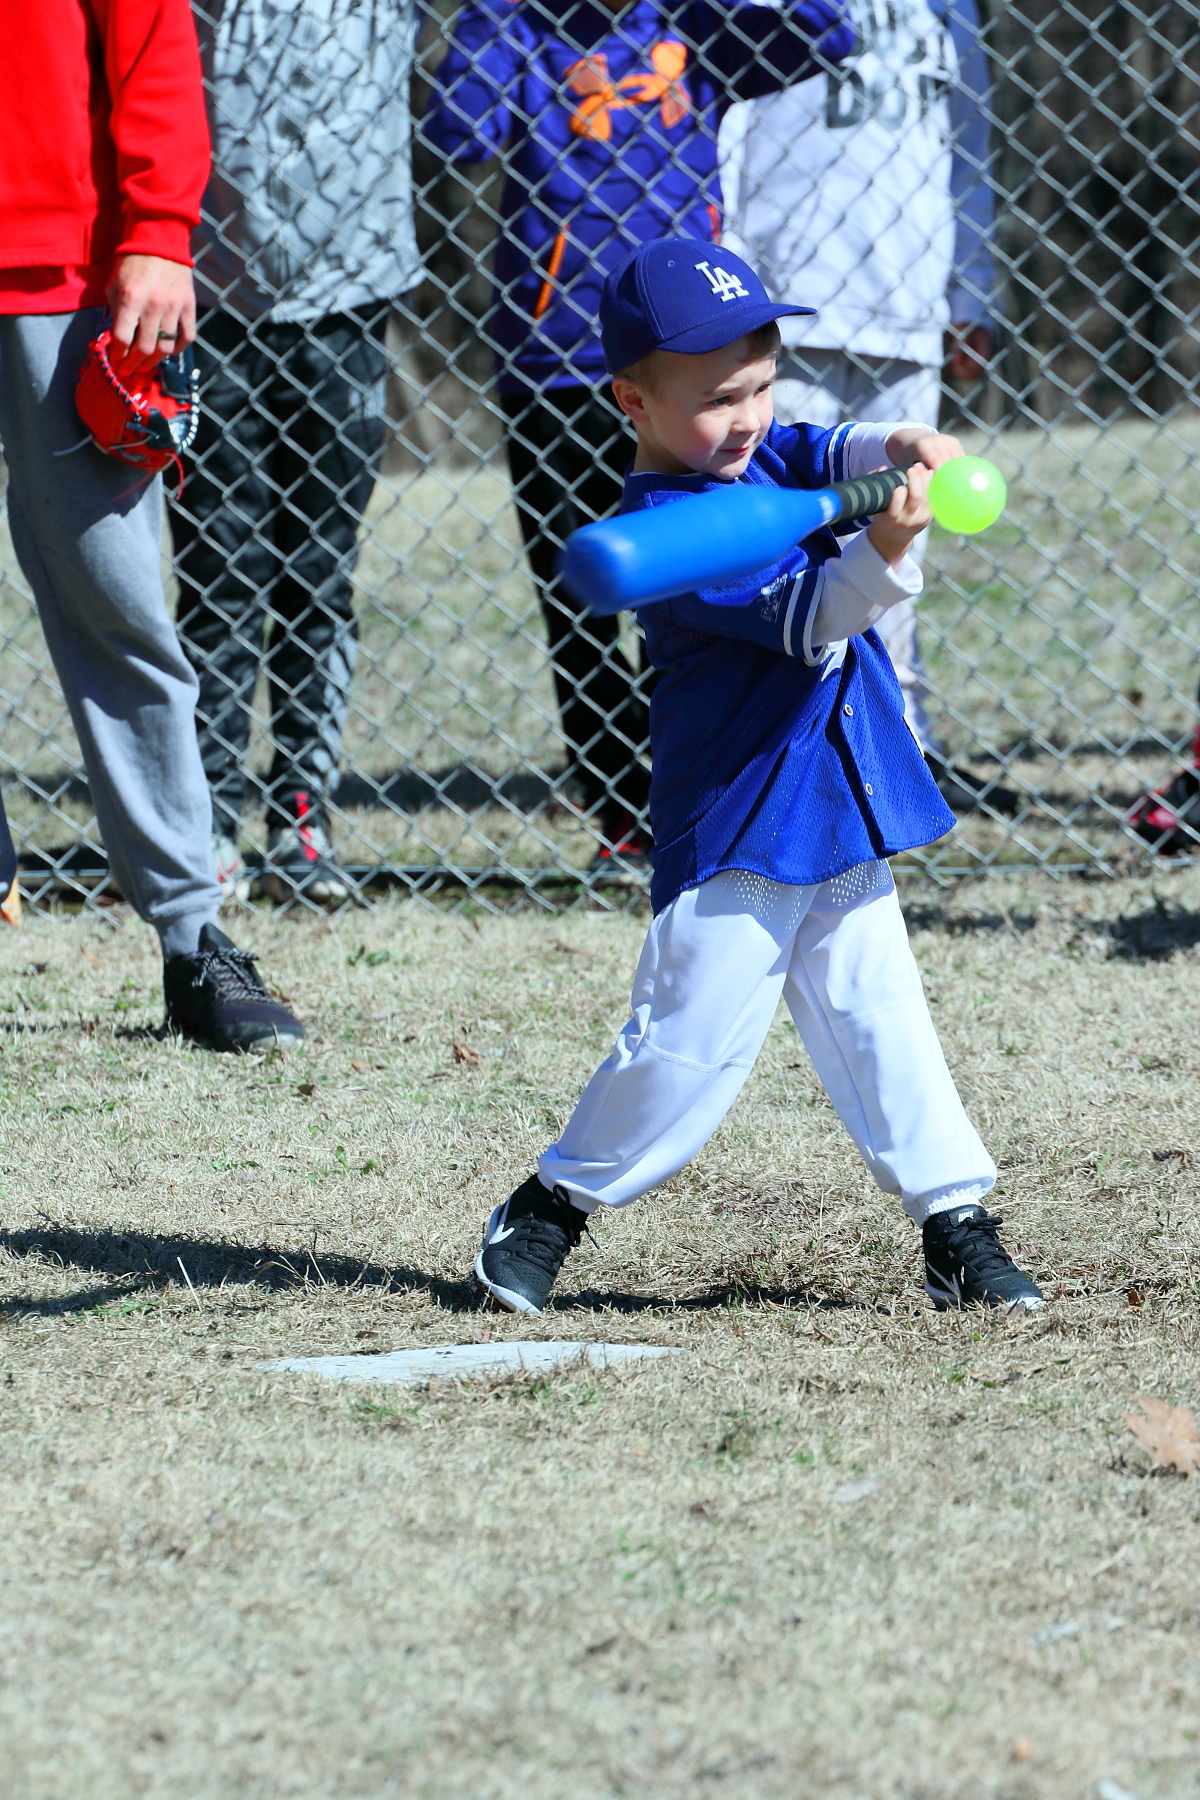 Youth Baseball Camps